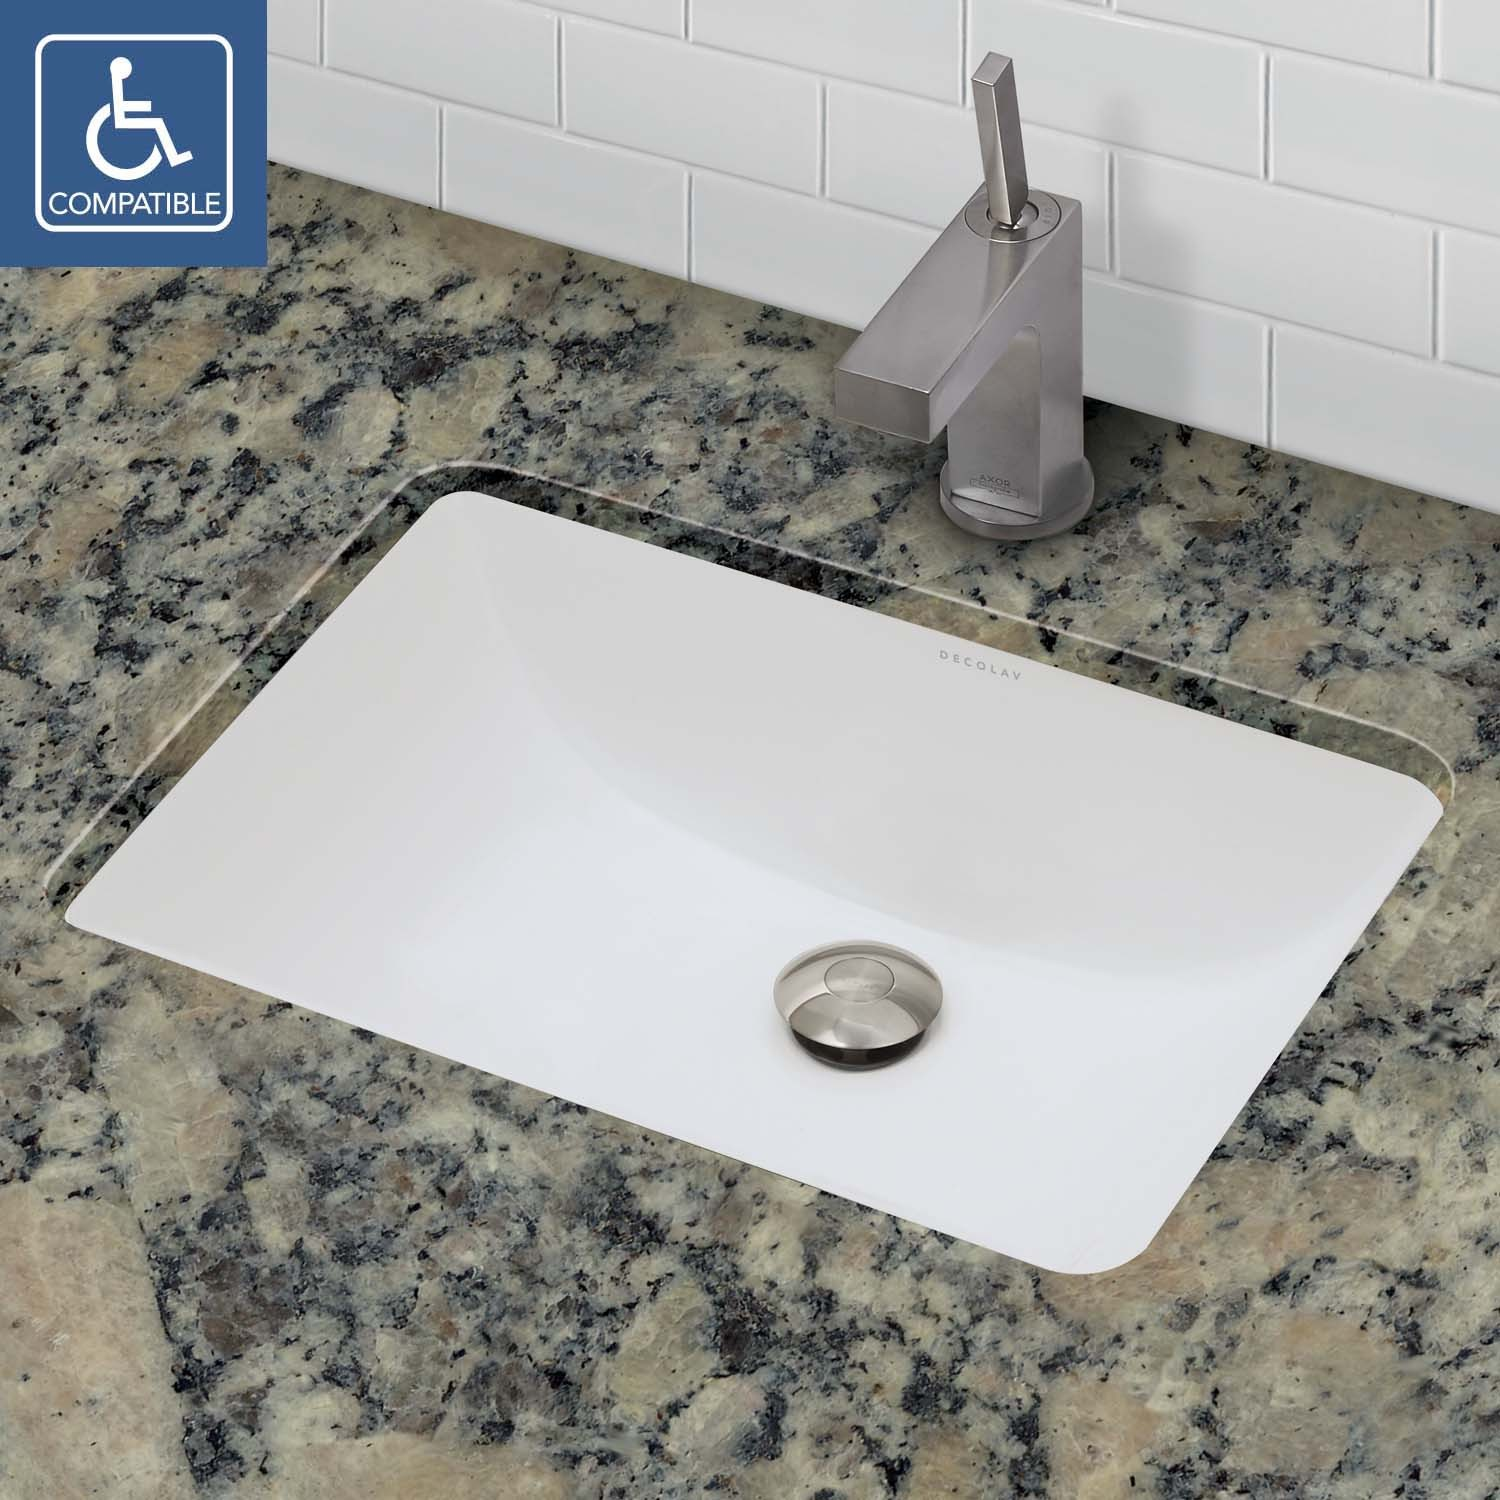 a rectangle vitreous china sink has it all  classic design  high  functionality and timeless beauty  This rectangular undermount bathroom sink  has soft. DECOLAV Callensia 1402 Series   Rectangular Undermount Vitreous